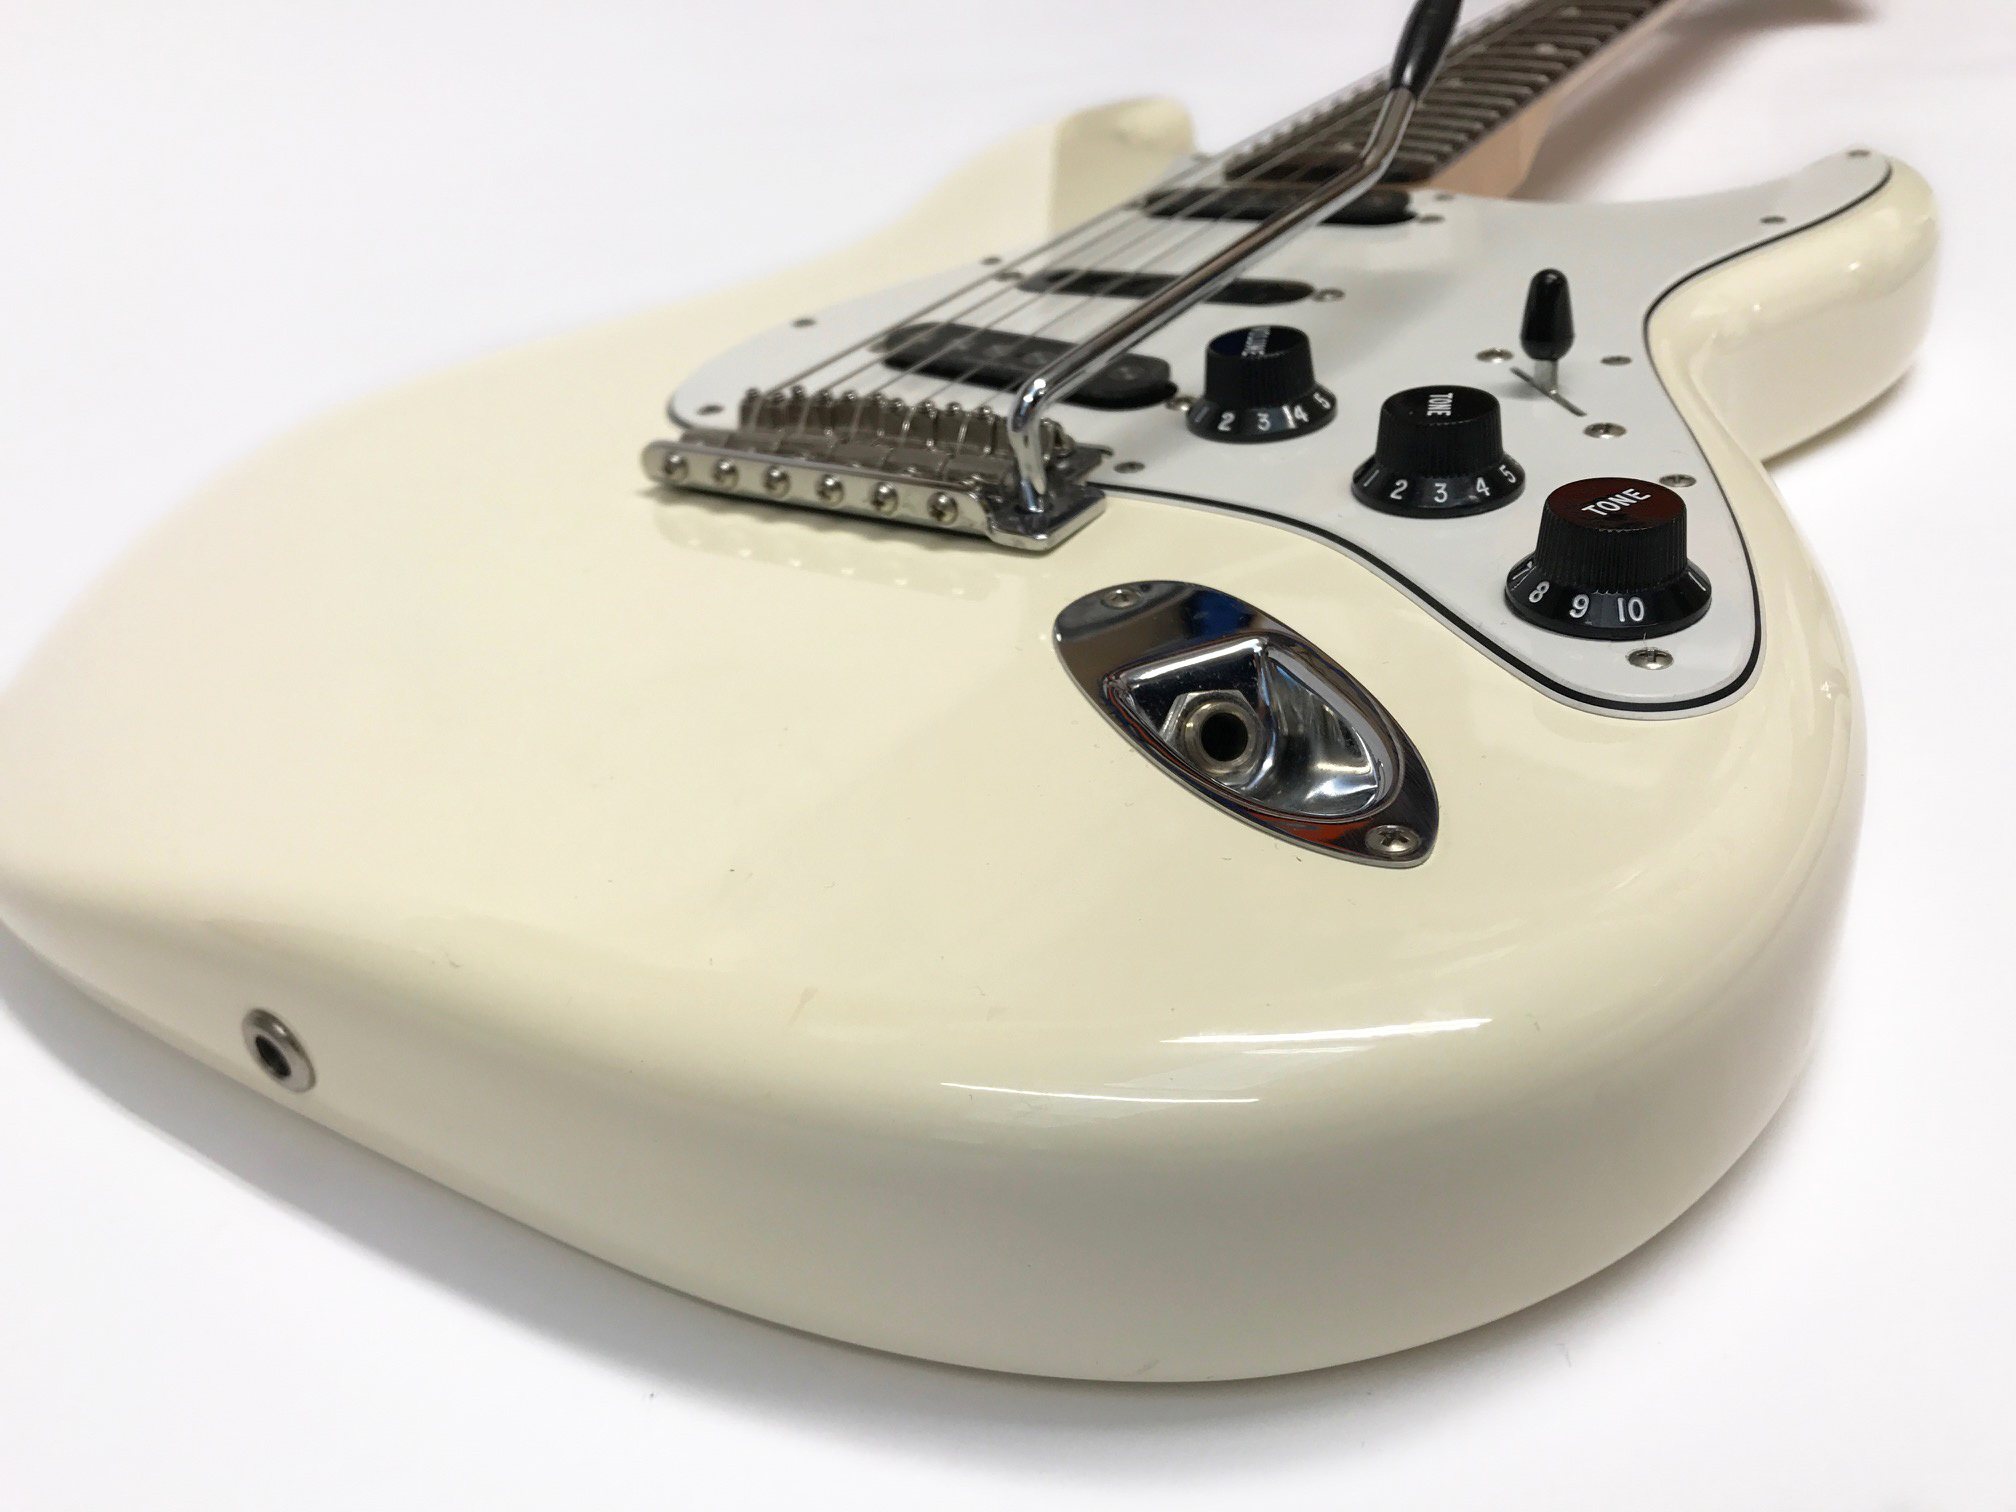 fender stratocaster ritchie blackmore signature edition pre owned 2011 white  [ 2016 x 1512 Pixel ]